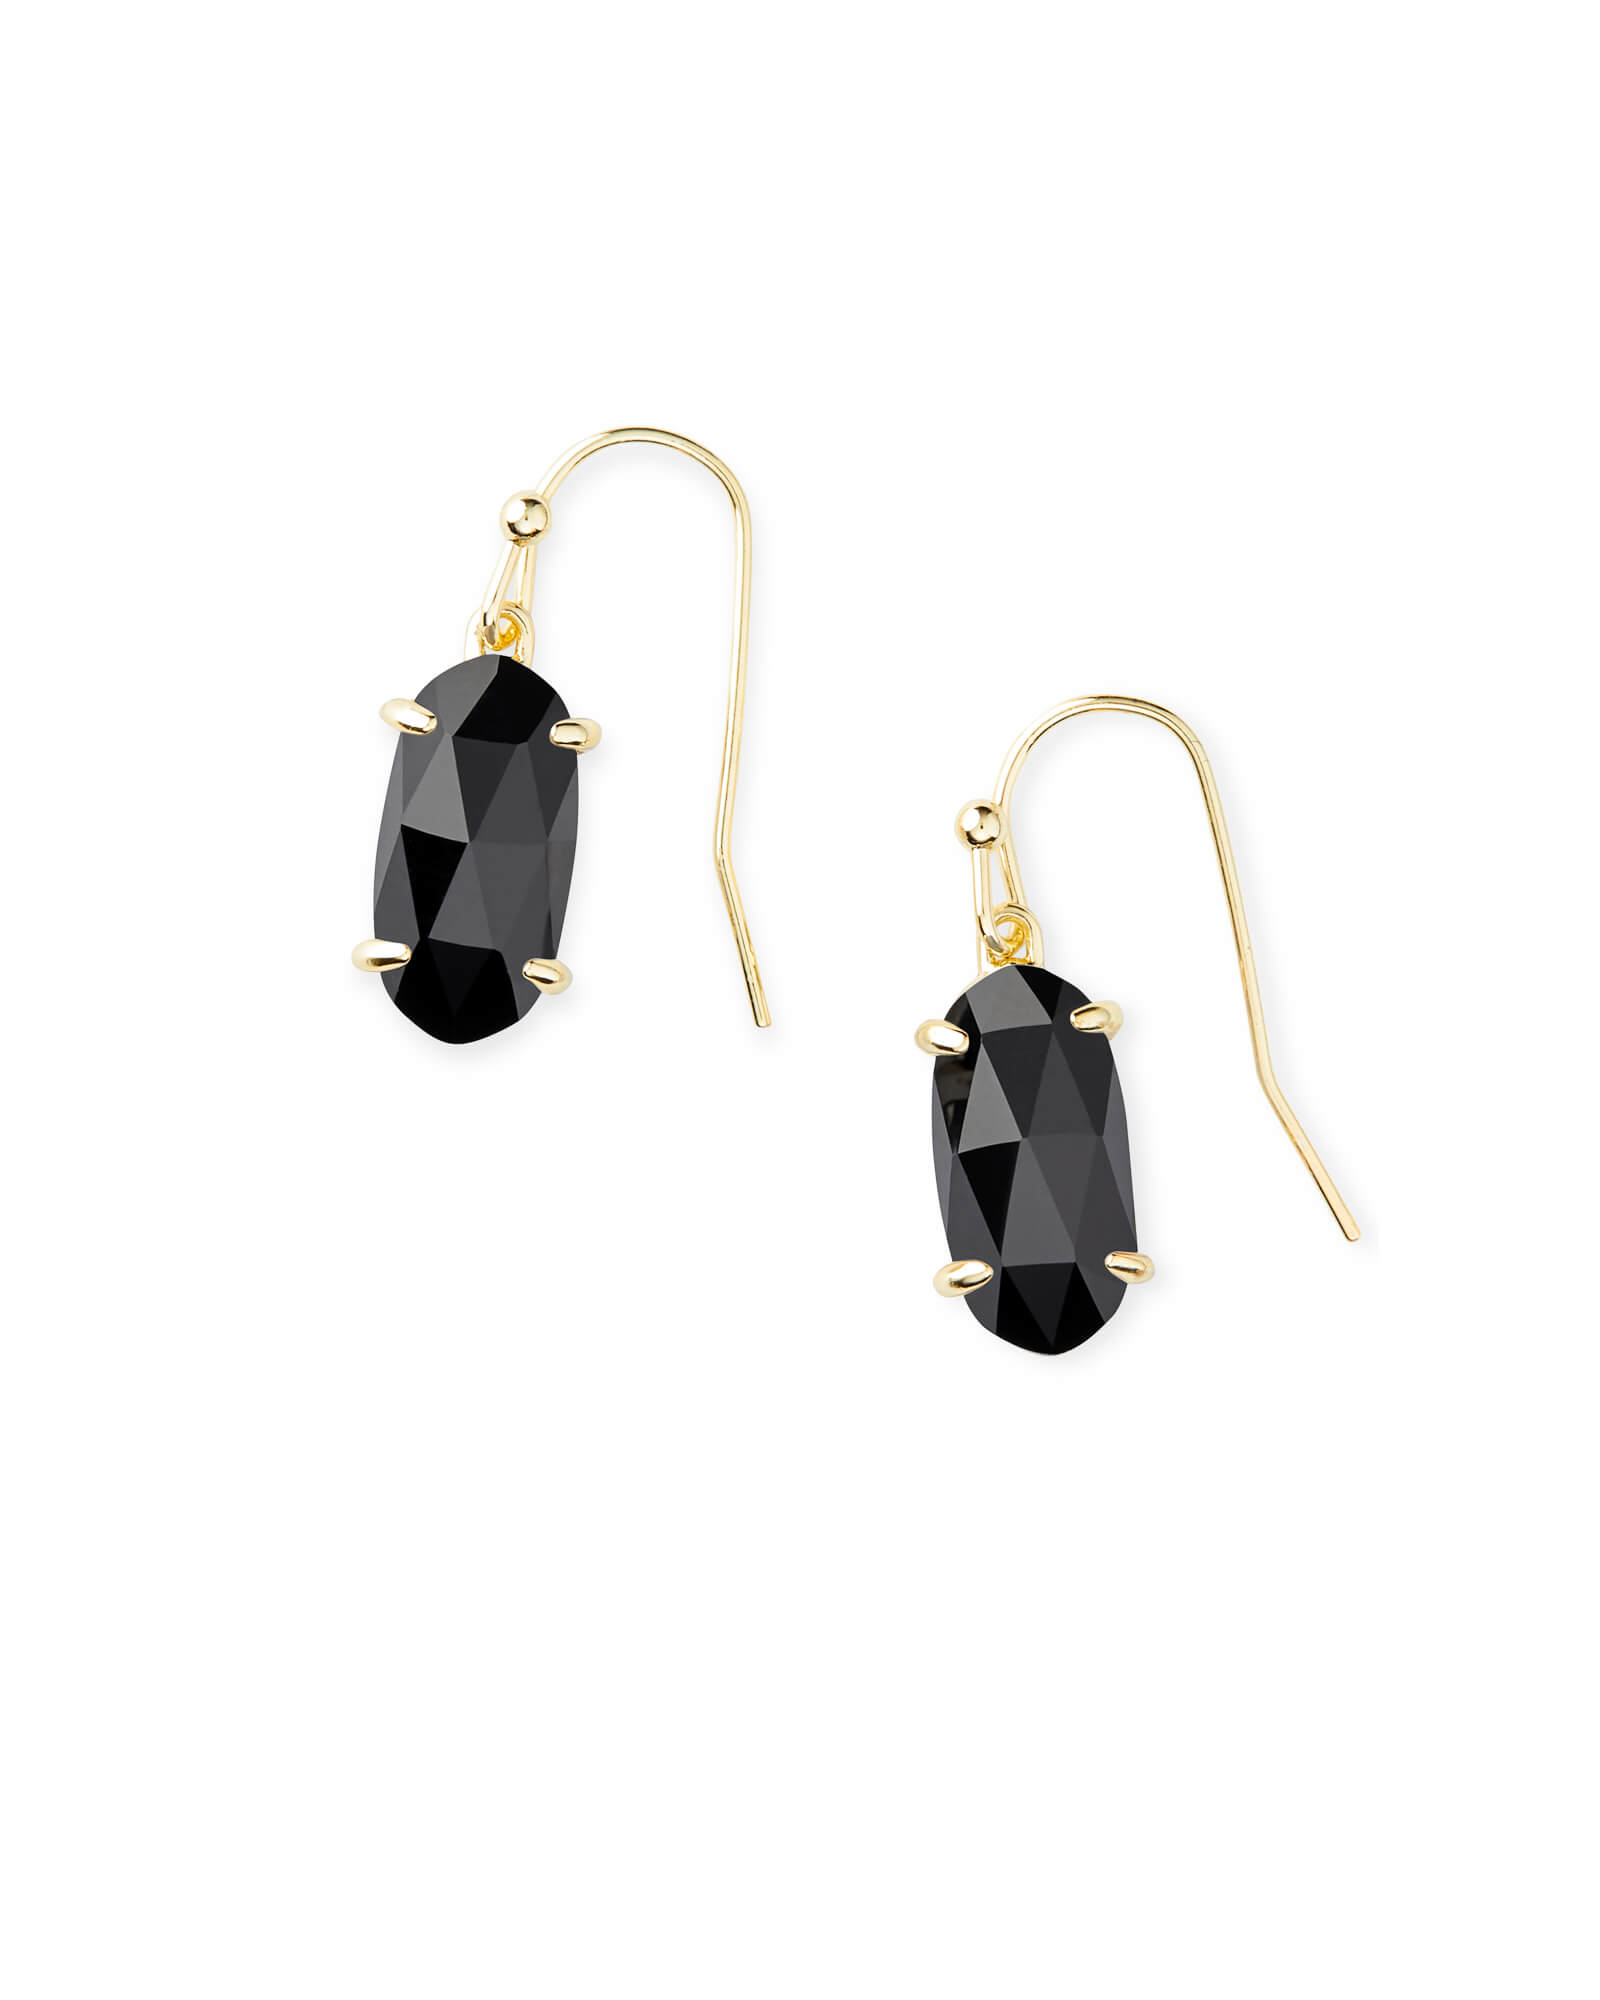 Lemmi Gold Drop Earrings in Black Glass